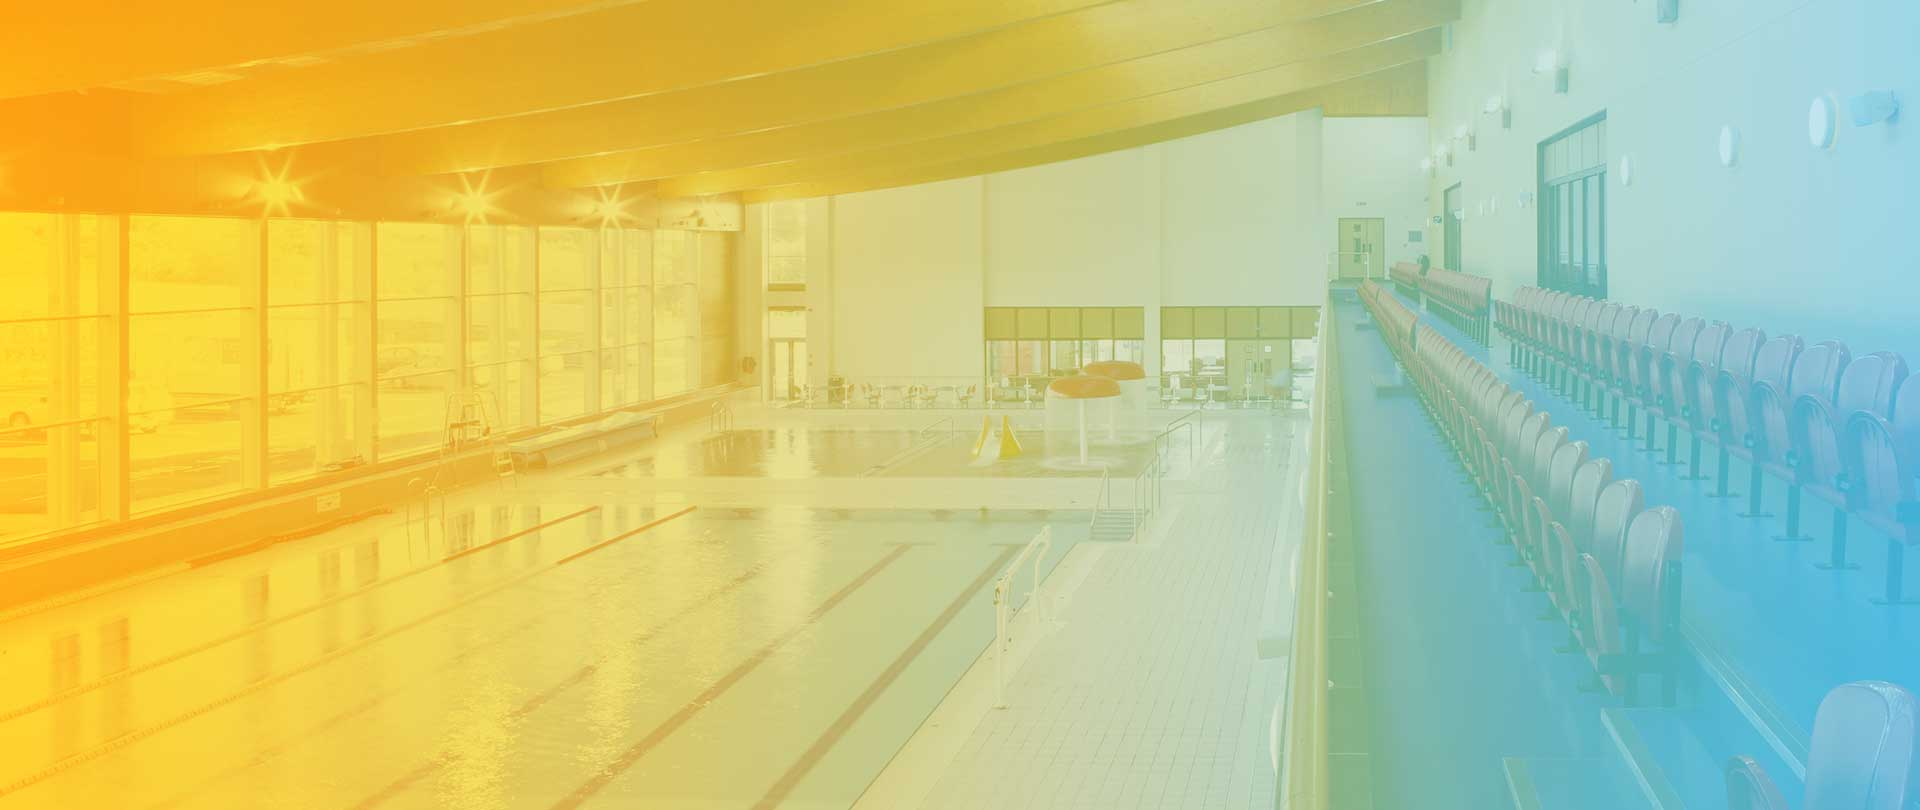 Letterkenny gym aura leisure centre letterkenny gym in - Drogheda leisure centre swimming pool ...